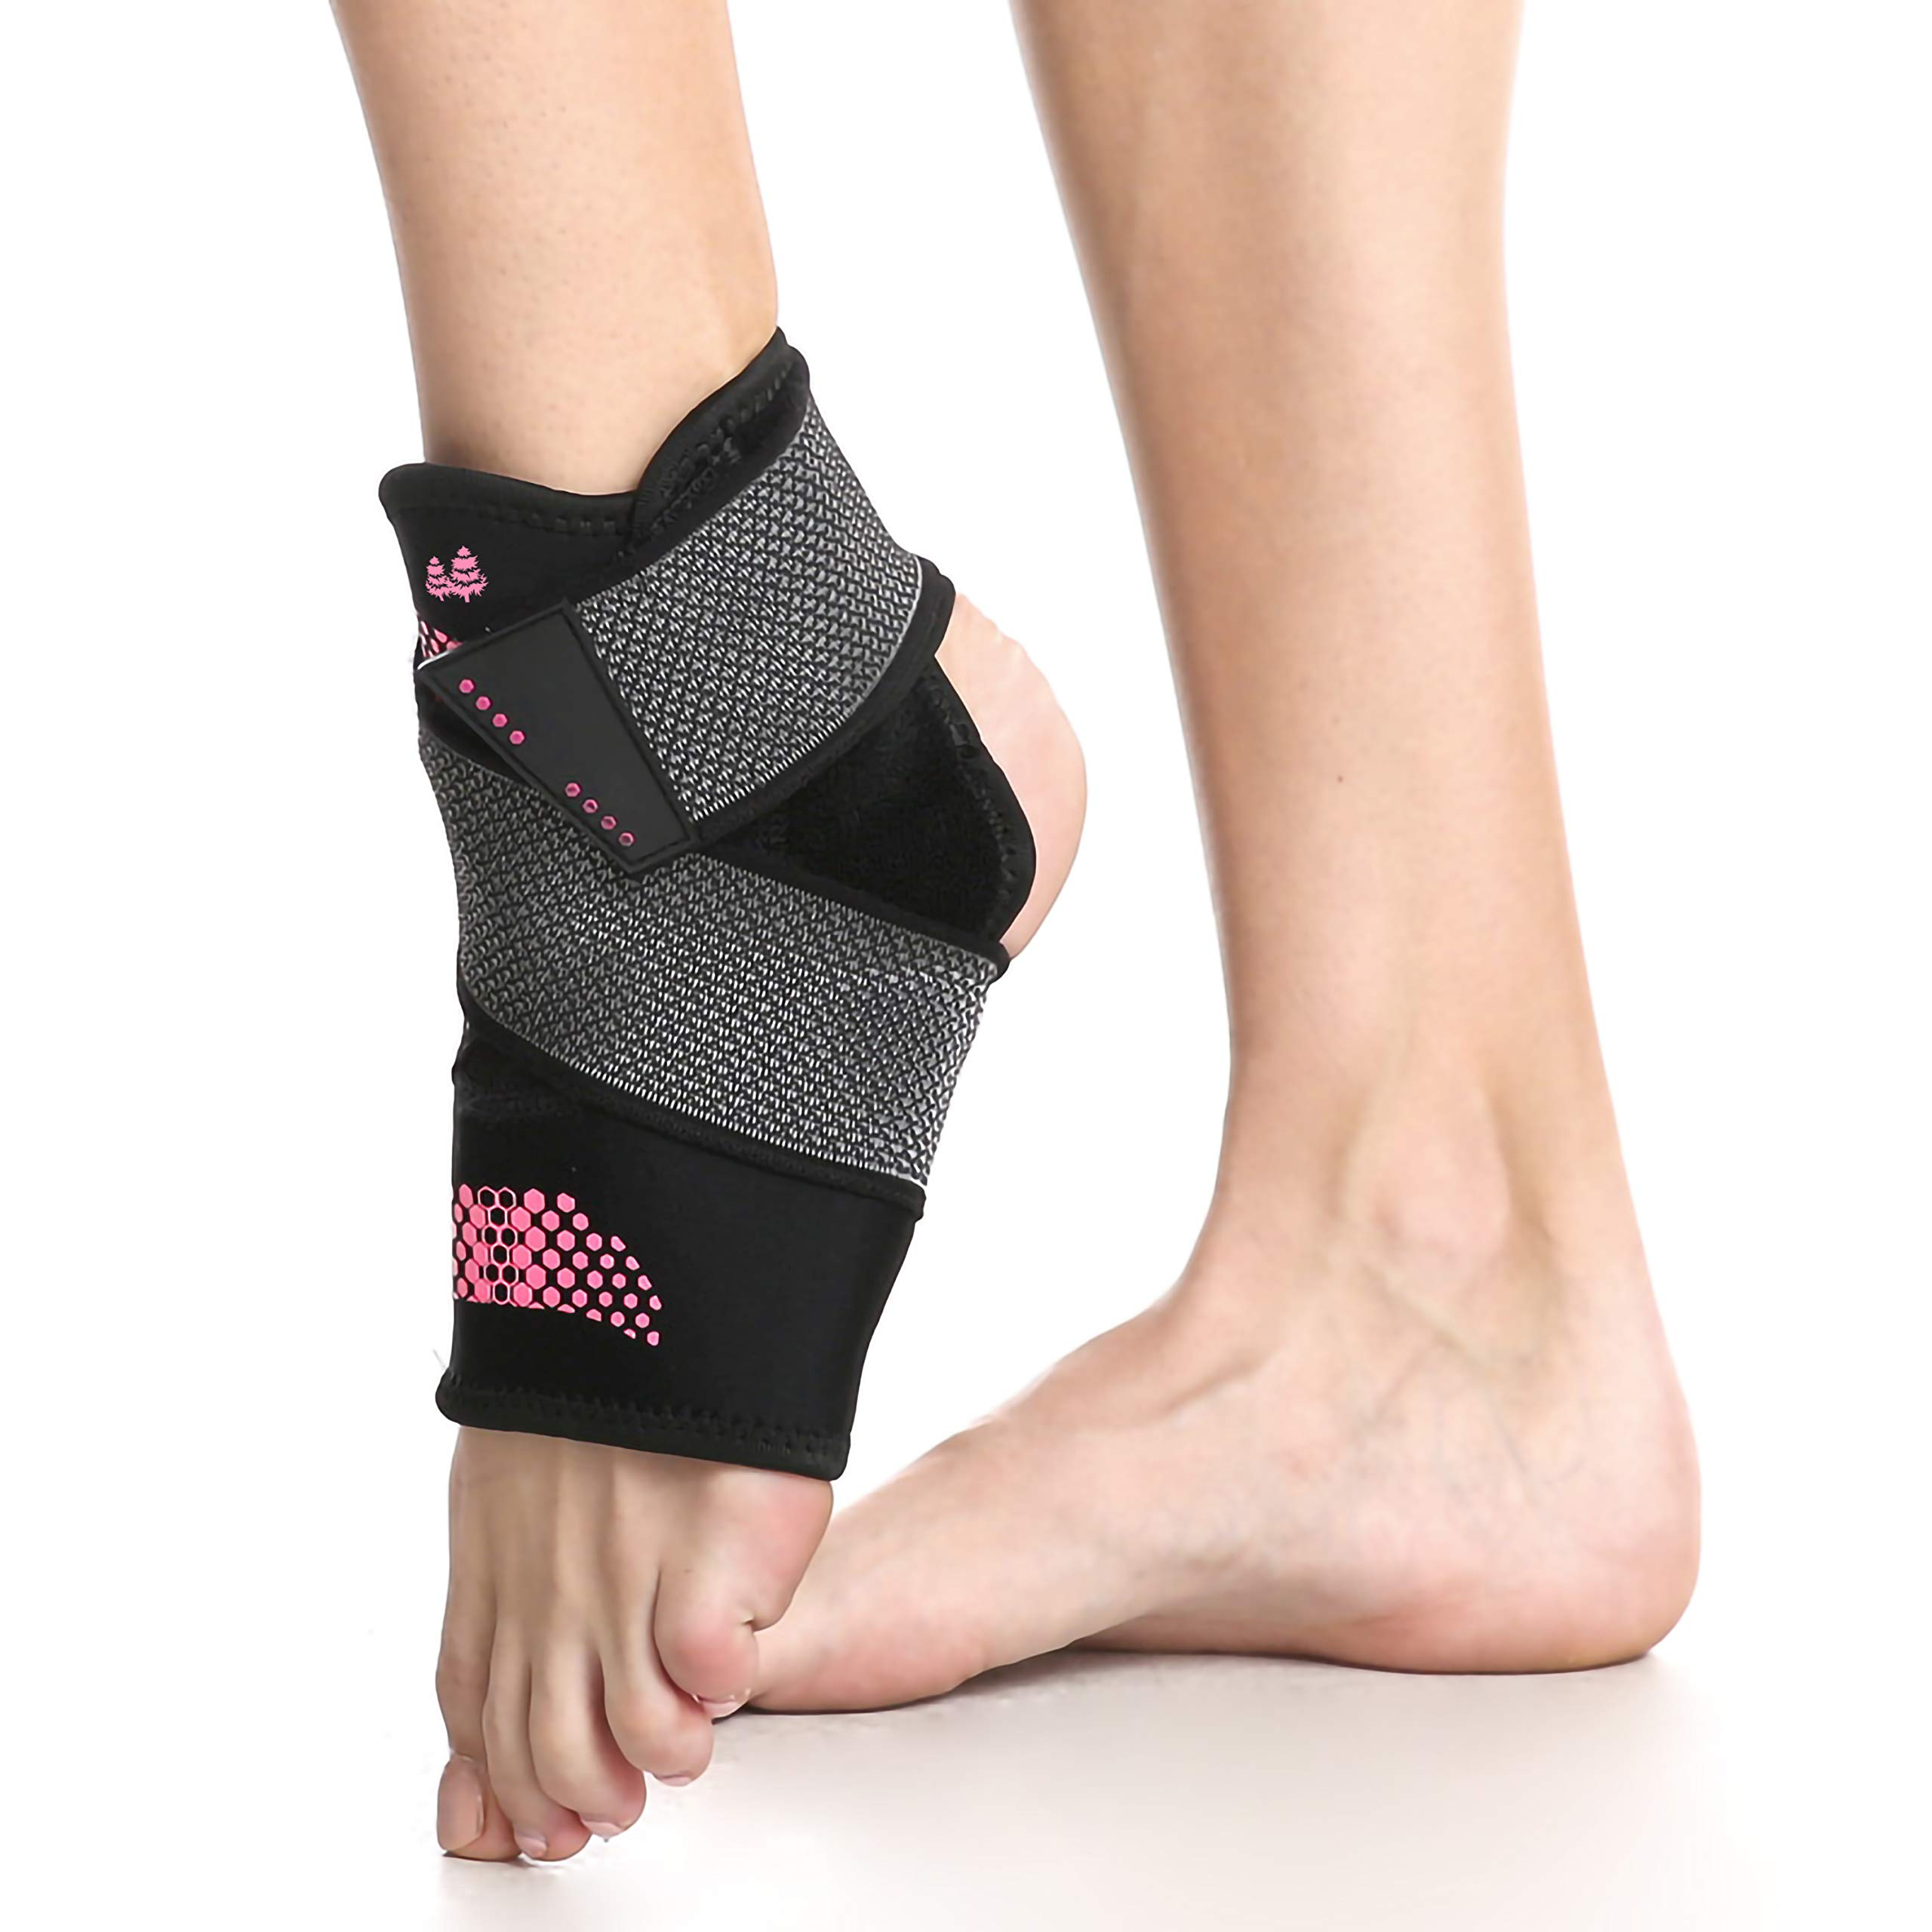 BLUE PINE Ankle Support Brace, Breathable Neoprene Sleeve with Adjustable Wrap (Pink/Black, Pair, Large)